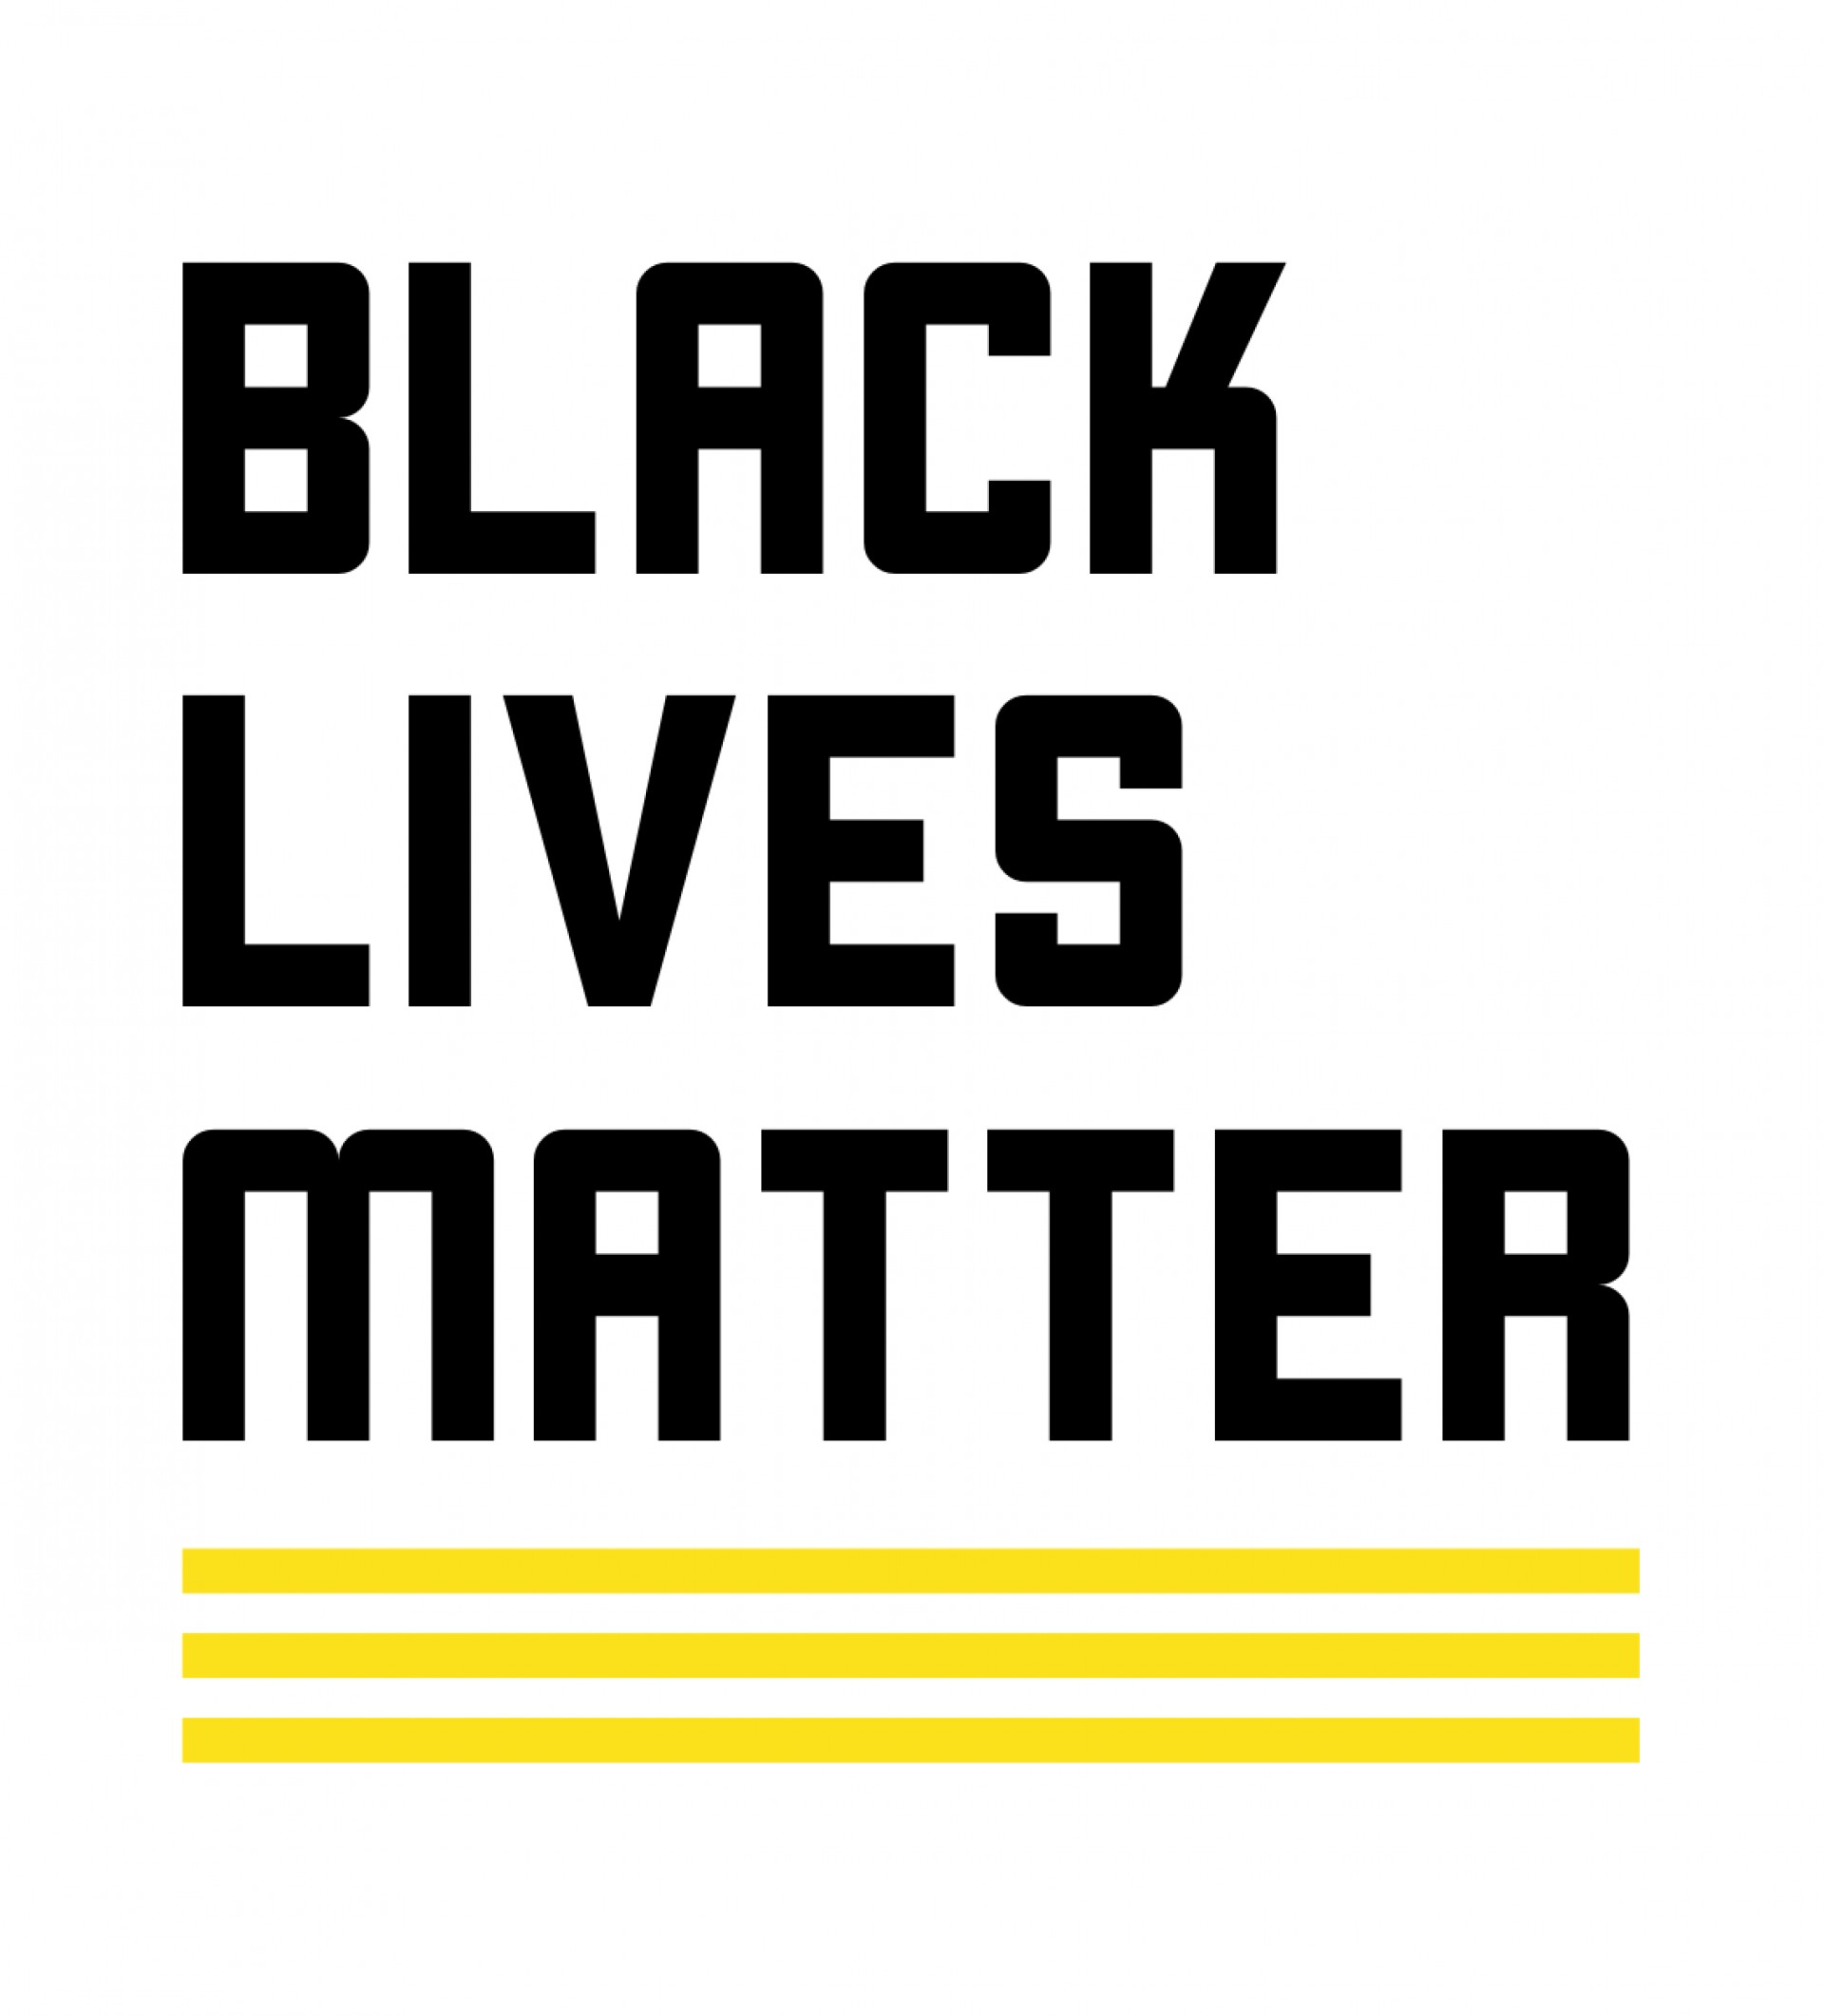 013 Blm Logo Black Lives Matter Research Outstanding Paper Movement 1920